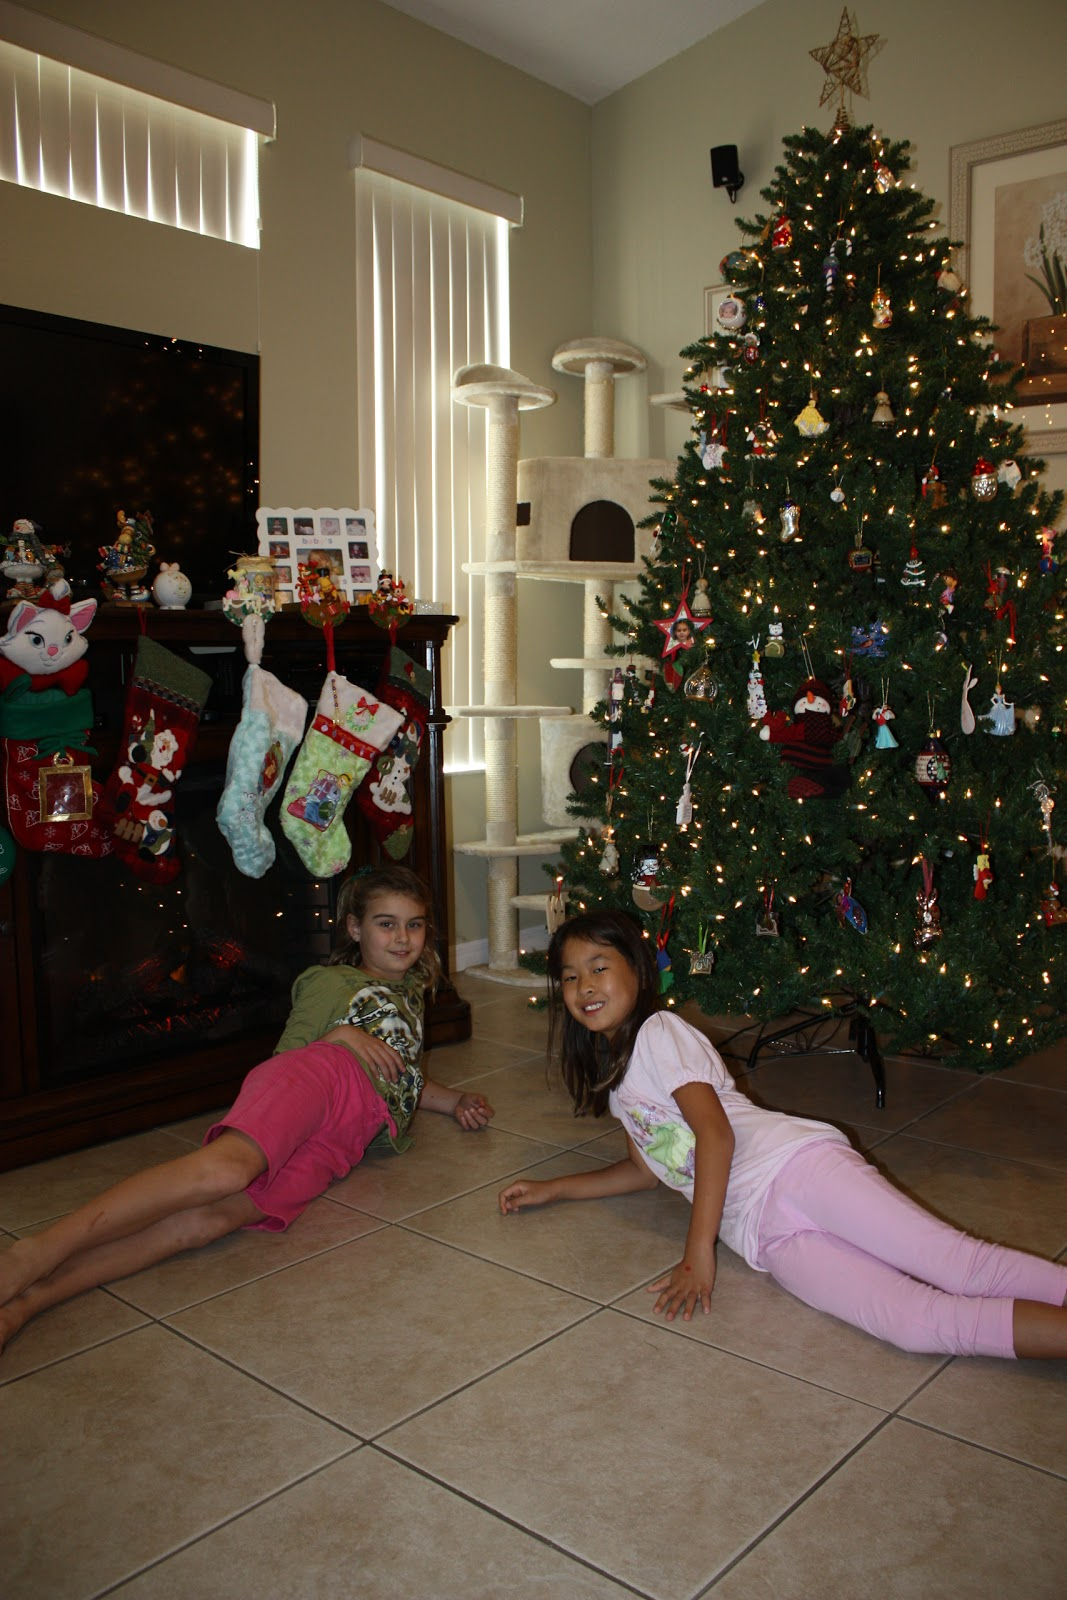 Our Family\'s Journey: Decorating the Christmas Tree on November 27th